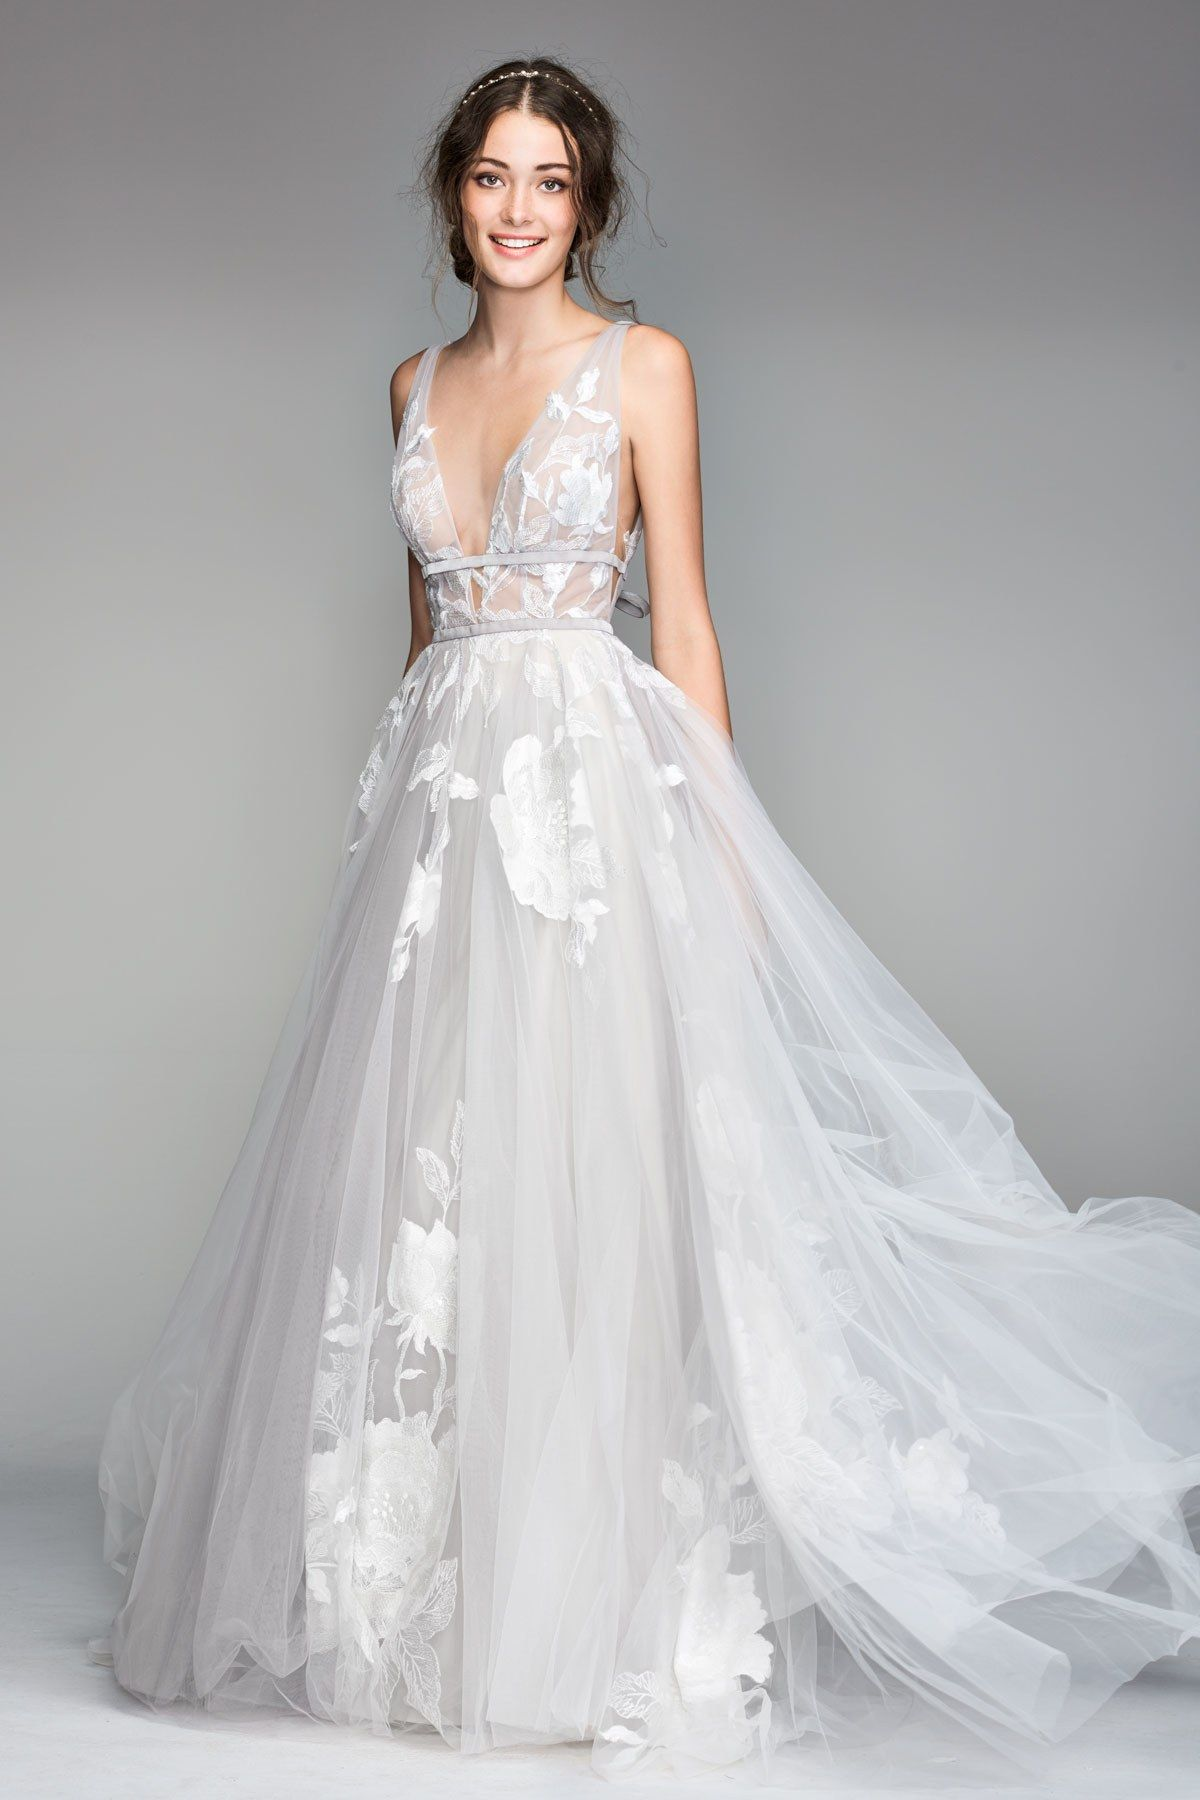 Willowby by watters bridal wedding dress collection fall 2018 willowby by watters bridal wedding dress collection fall 2018 brides junglespirit Image collections